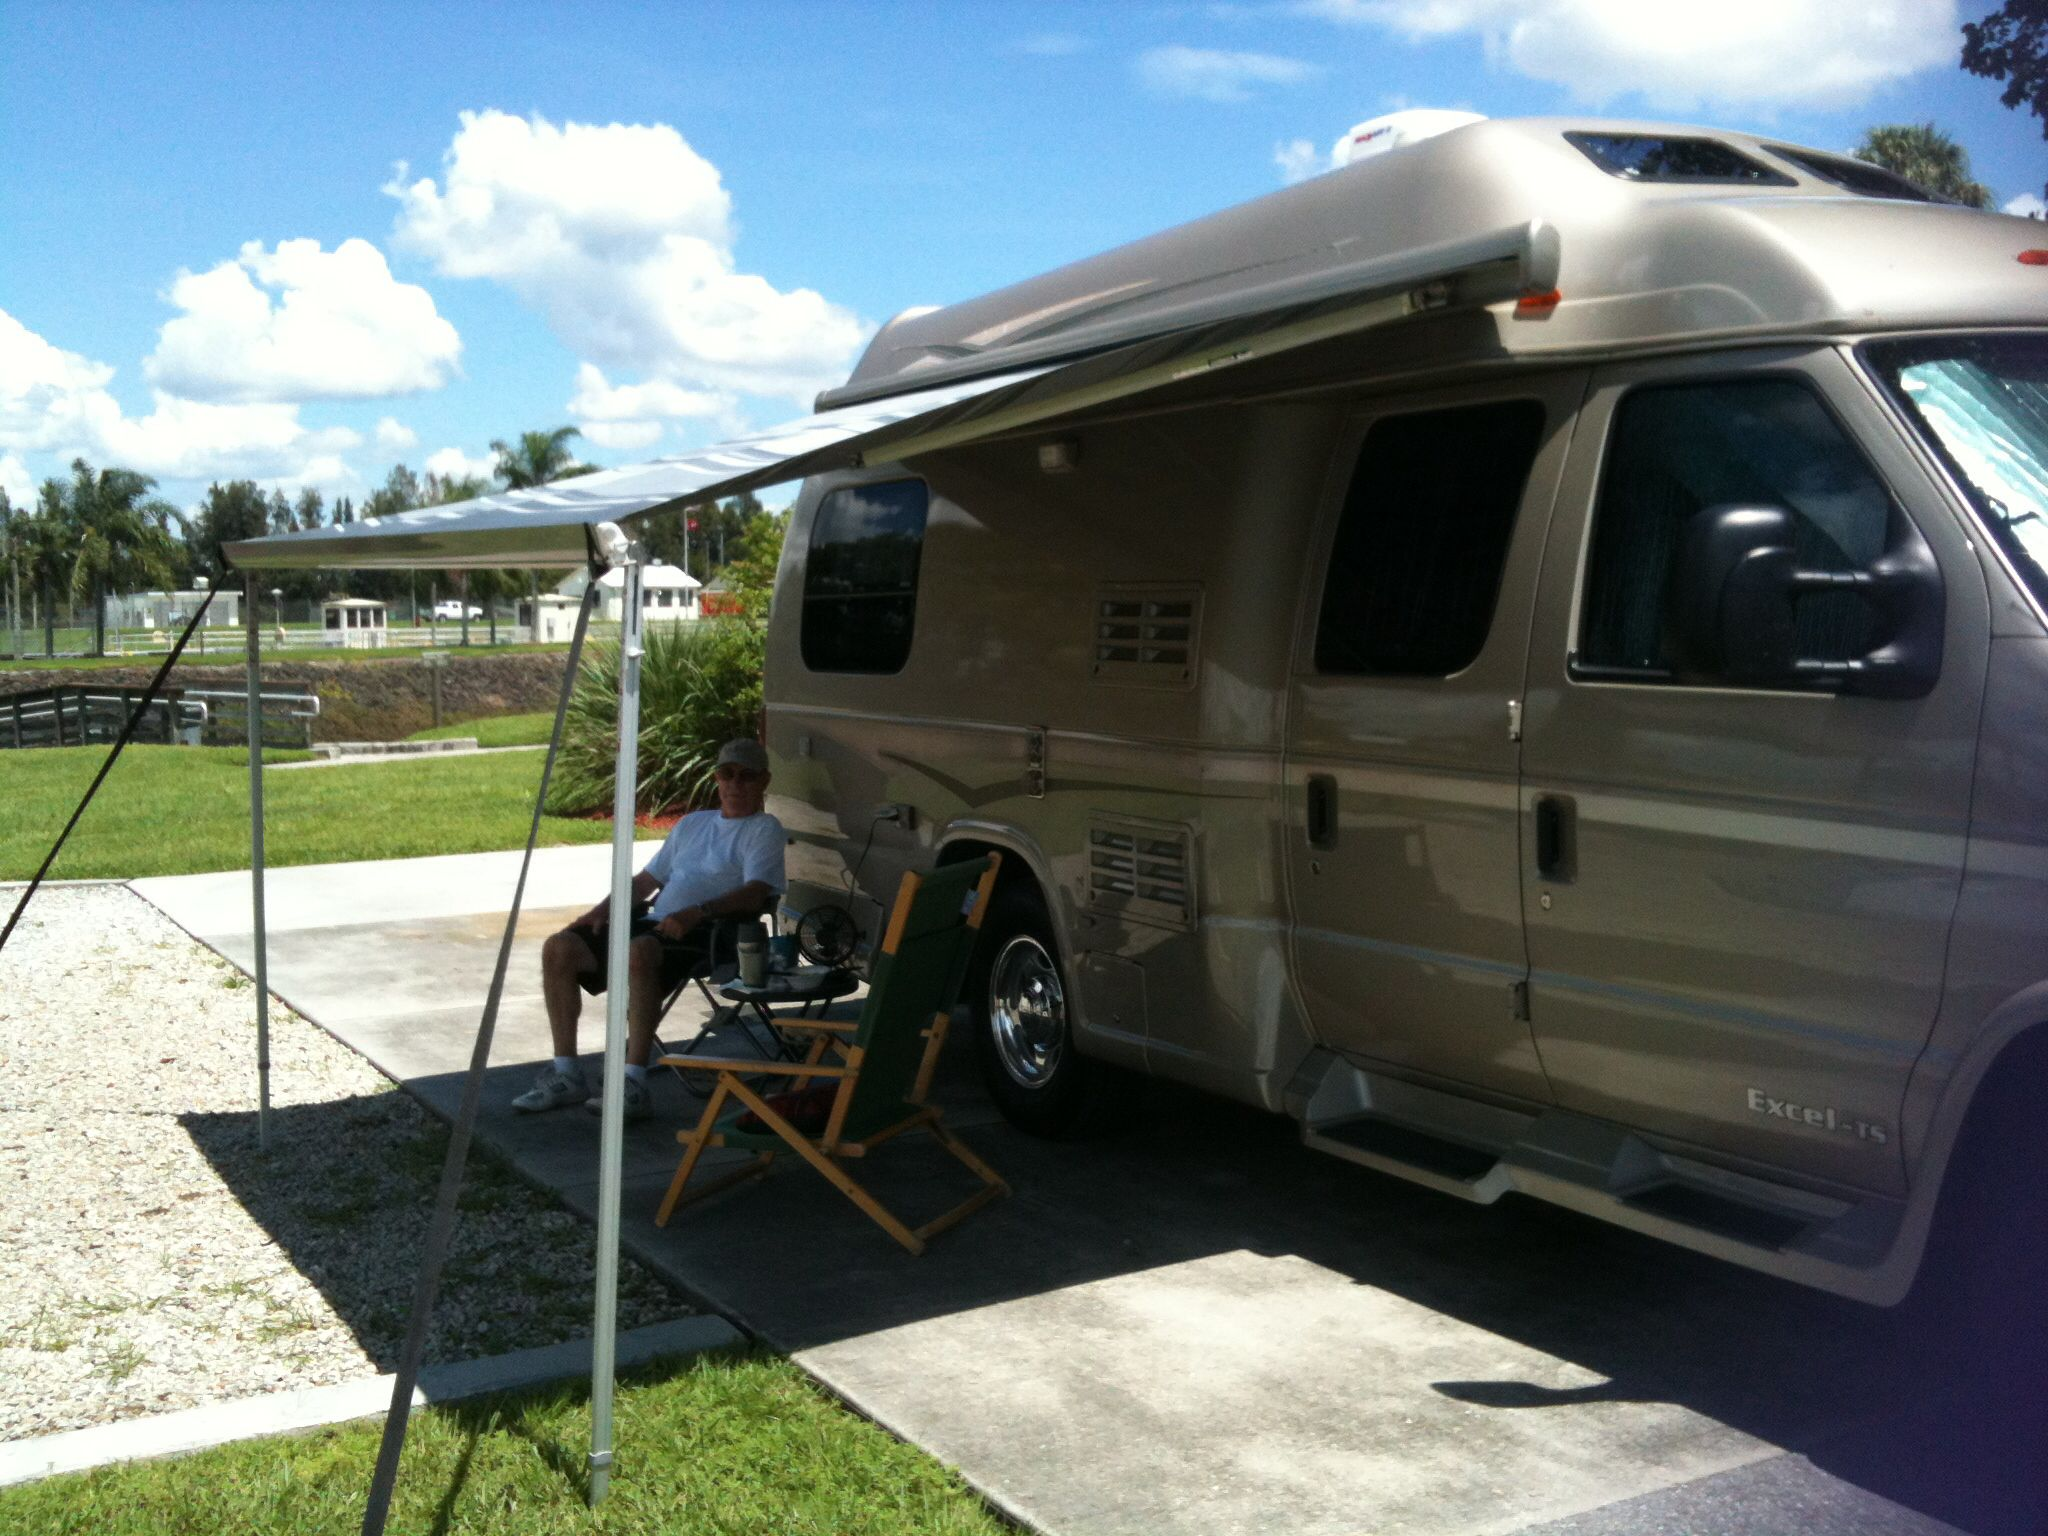 1986 Sunrader In Ashland Or Pictures For Sale Ashland Class C Rv